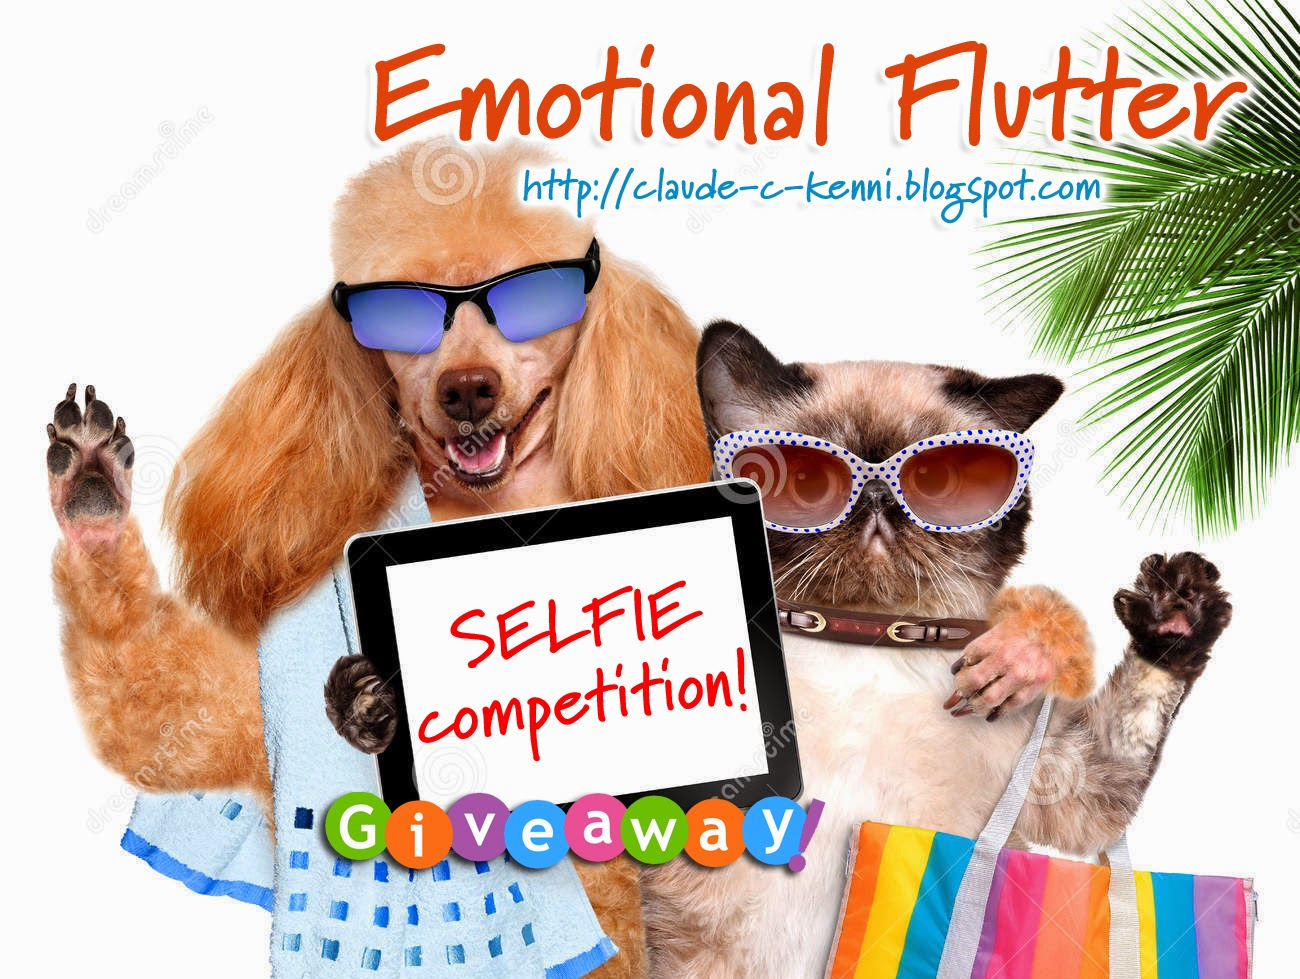 Emotional Flutter Selfie Competition GIveaway